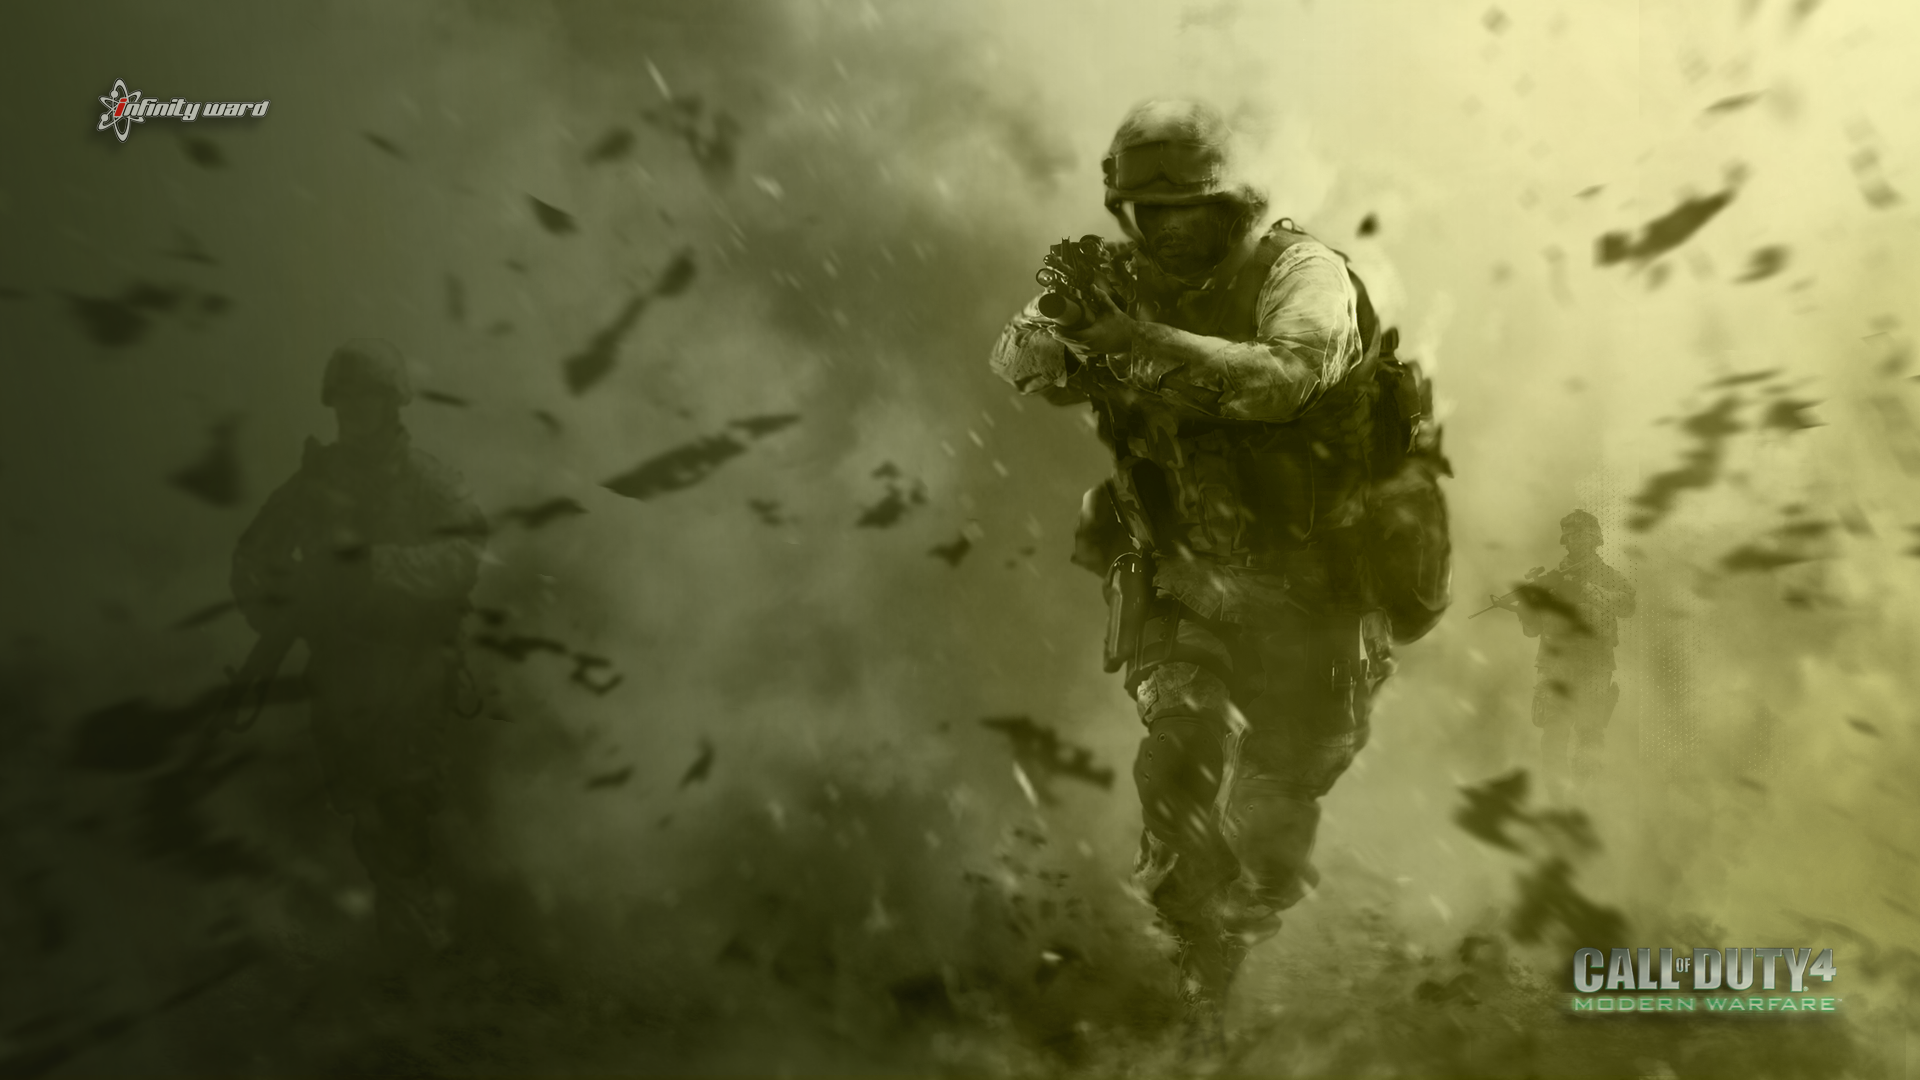 Call Of Duty Modern Warfare 4 Wallpaper Desktop